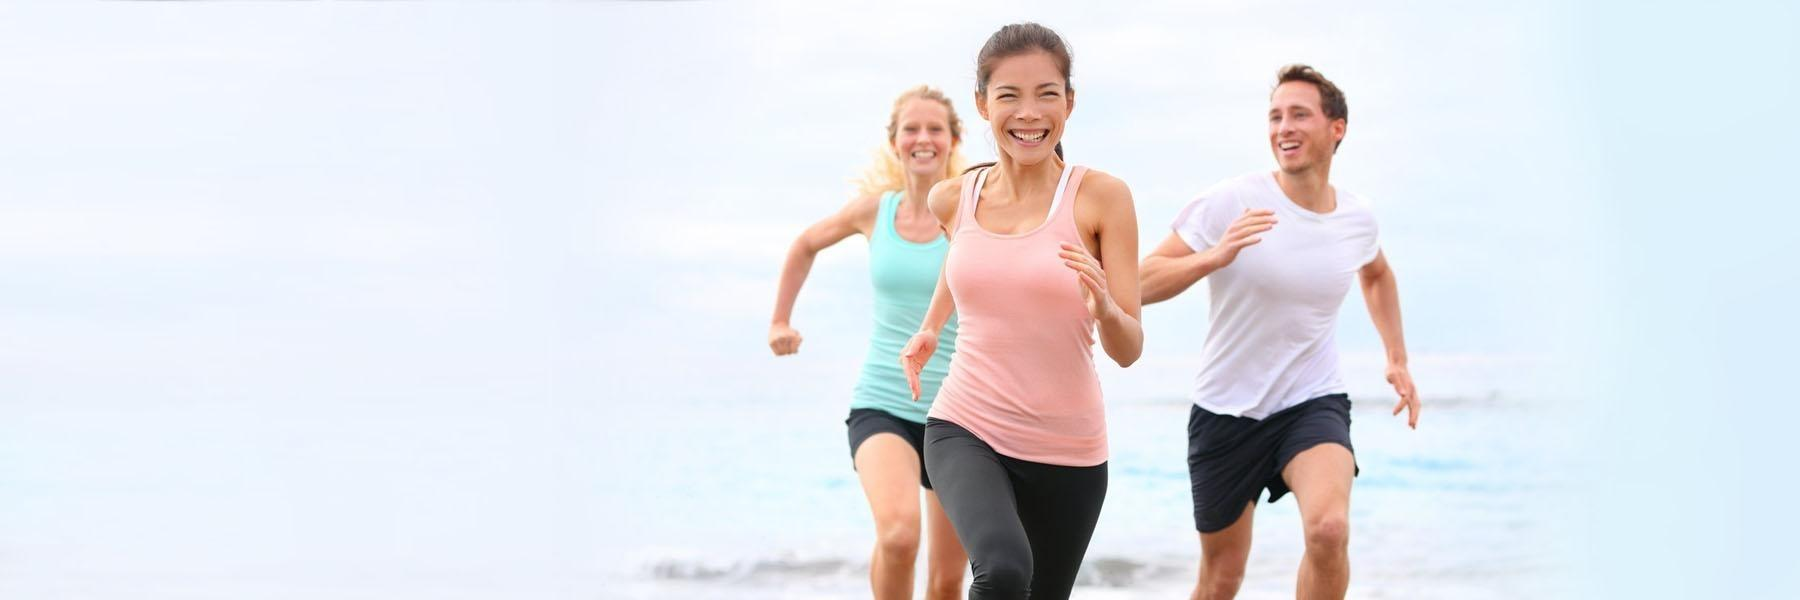 Two women and man running on beach | Dentist Paddington NSW